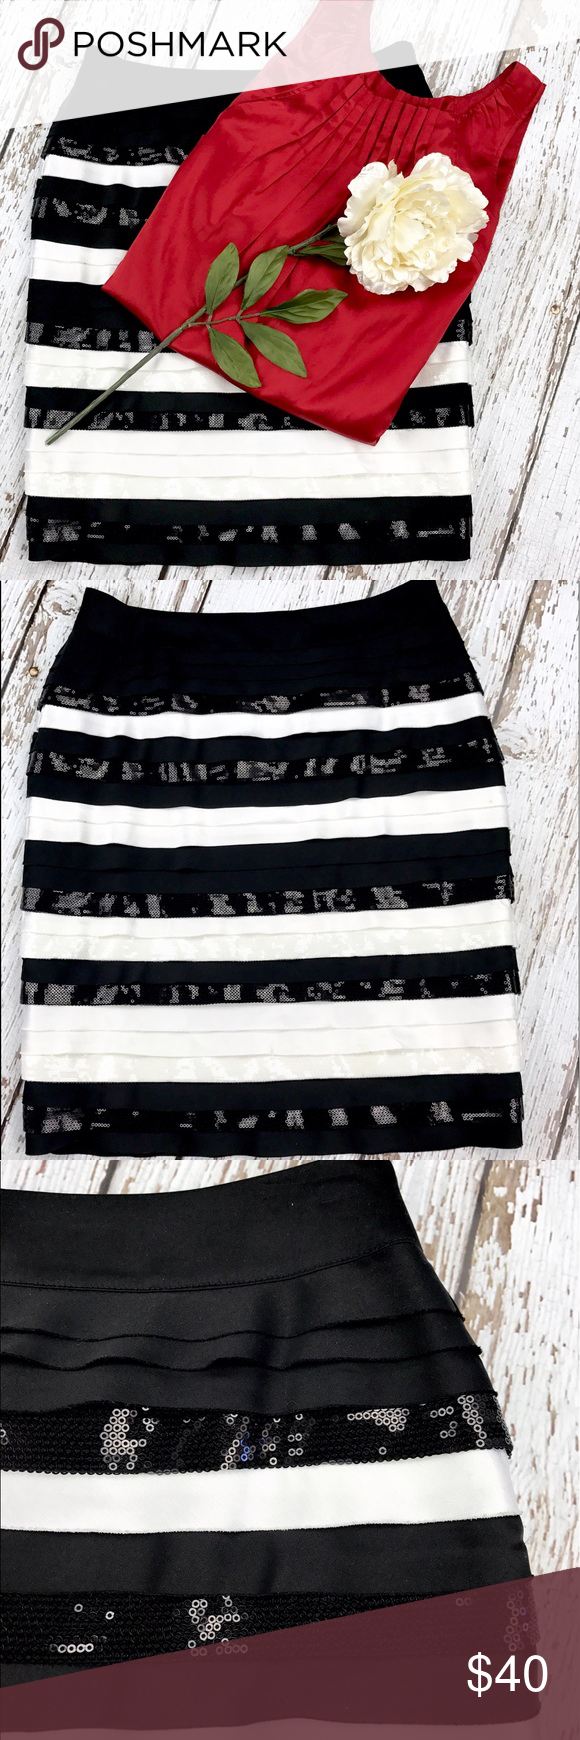 "💕SALE💕 White House Black Market Sequins Skirt Gorgeous 💕 NWT White House Black Market Sequins Layer Skirt zip up side High Quality 21"" from the top of the Waist to the bottom 15"" across front of Waist White House Black Market Skirts"